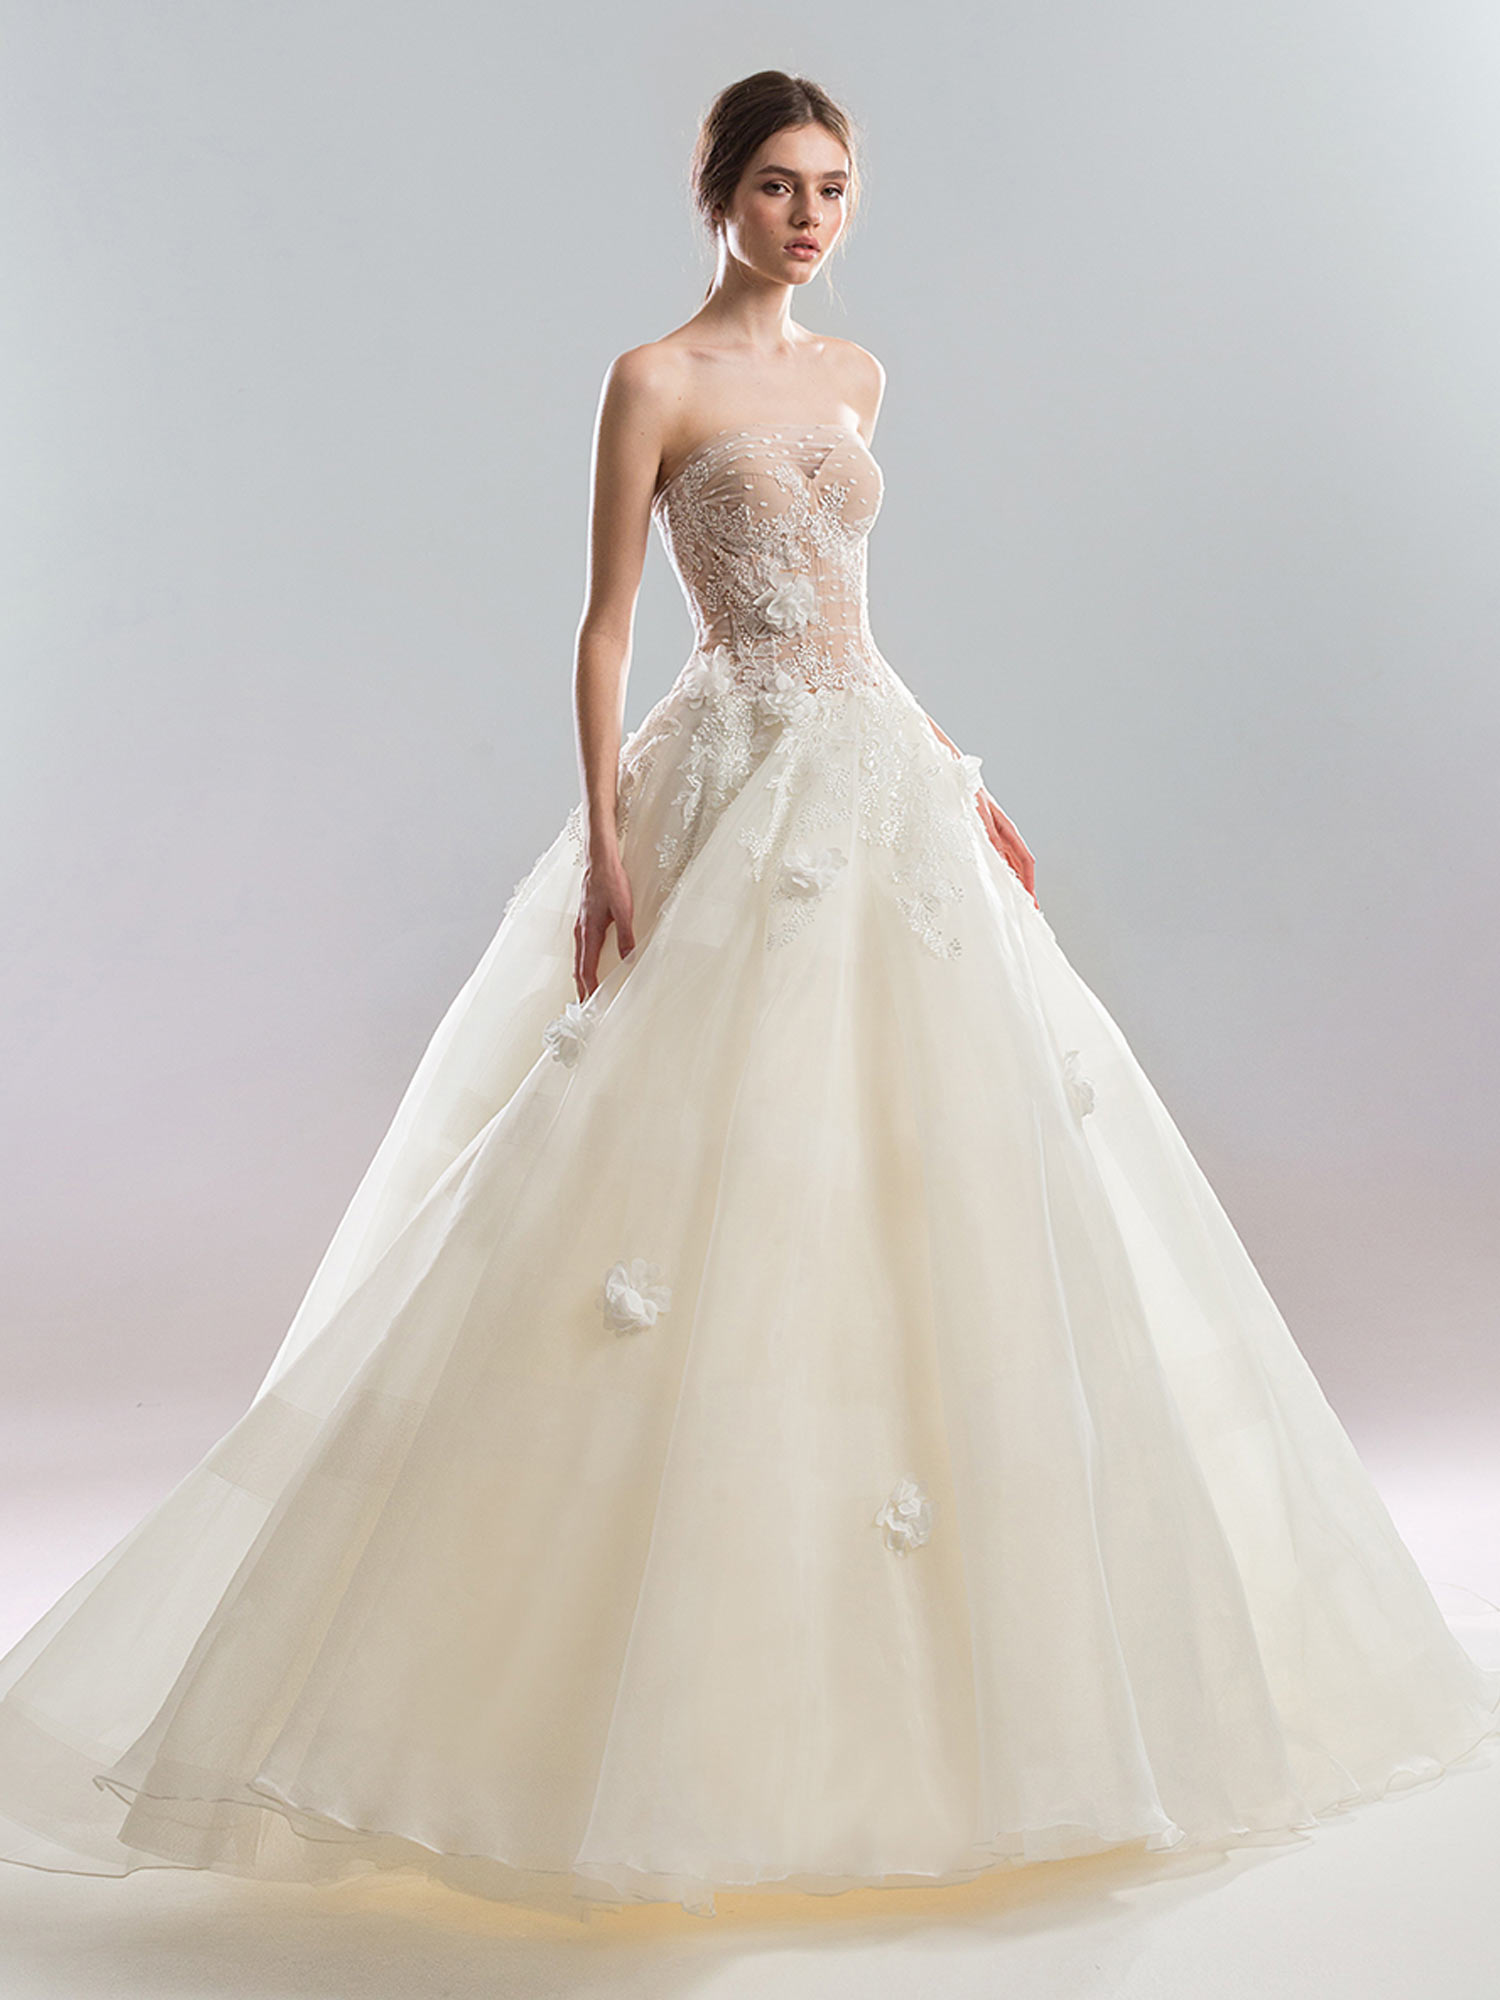 6e399b916 Home / Bridal Fashion / Strapless ball gown wedding dress with floral  applique and sheer overlay